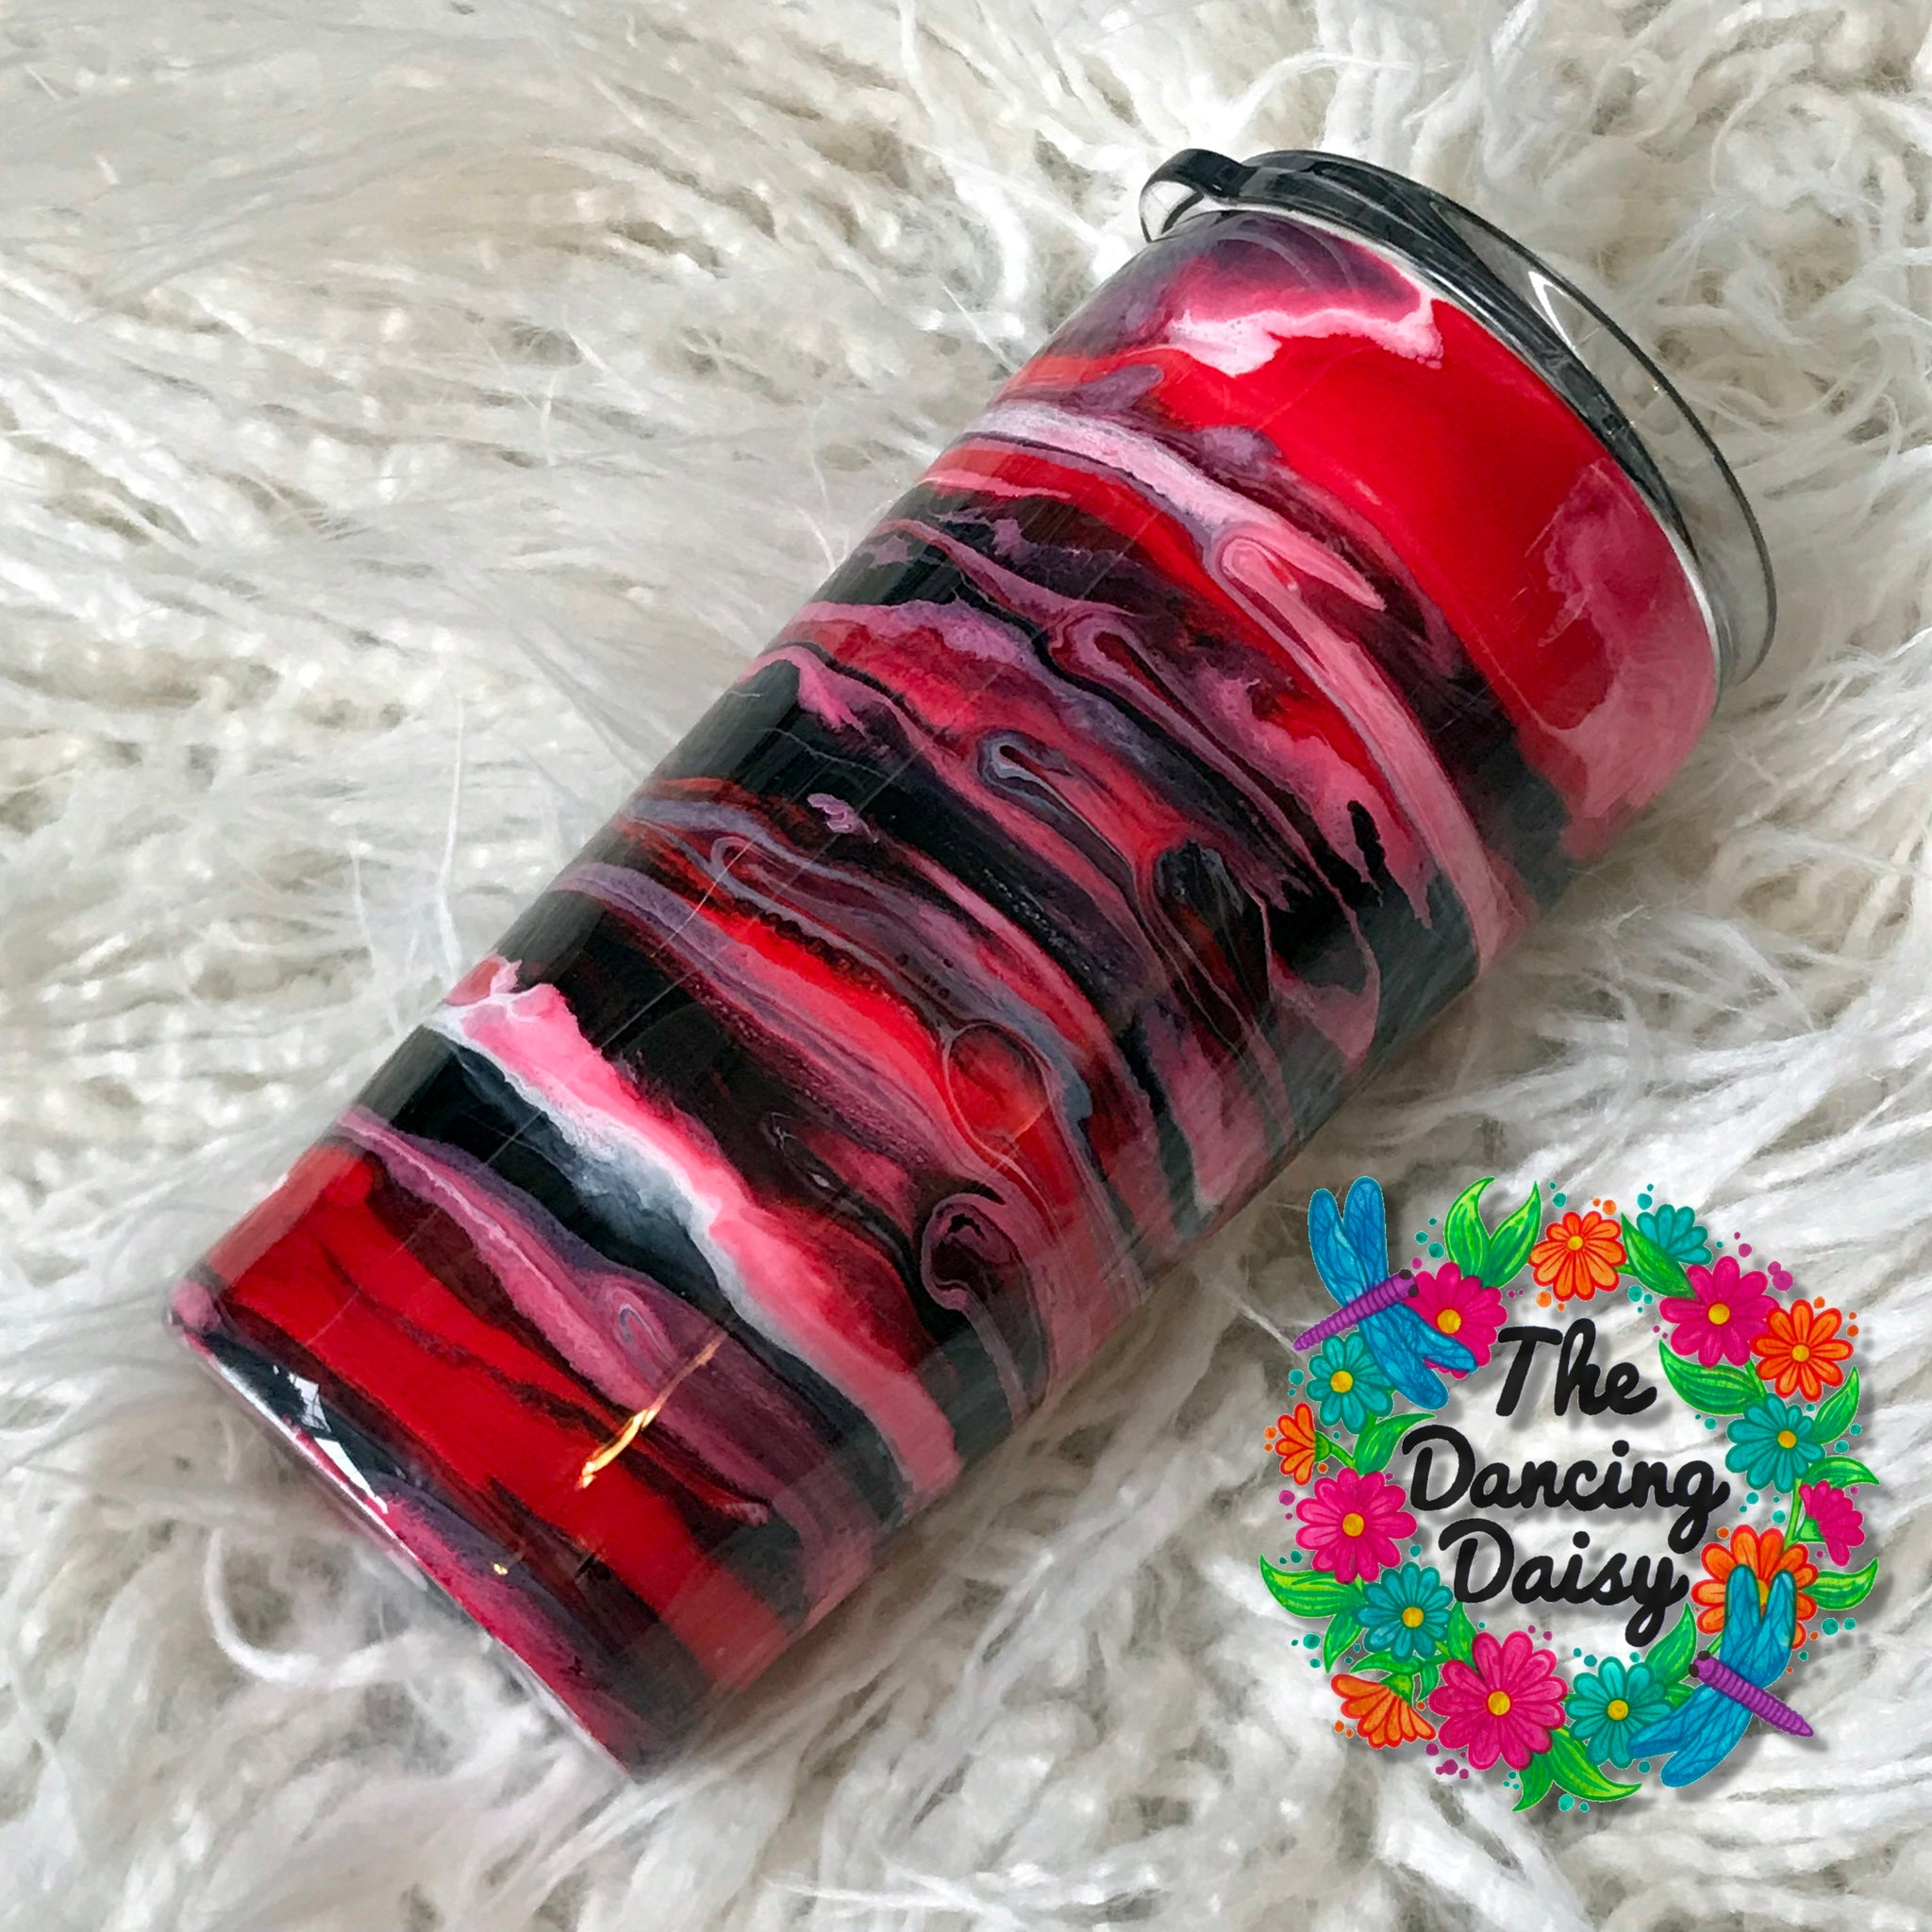 16 oz red, black and white swirl tumbler